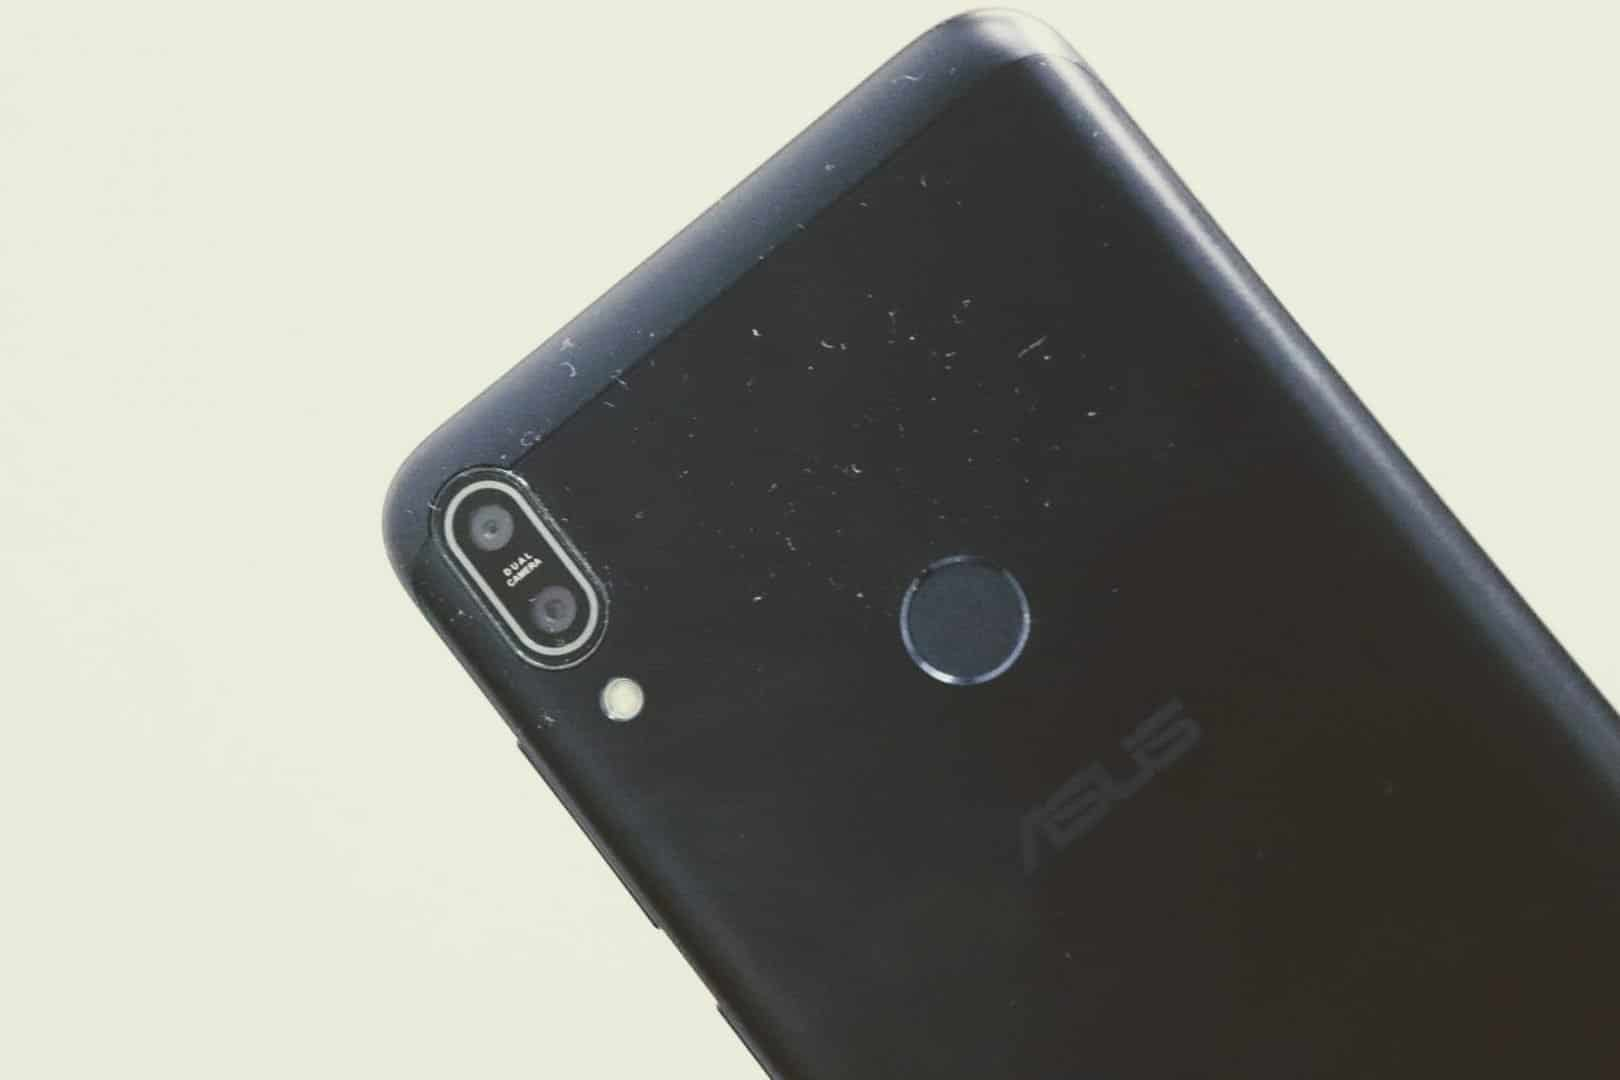 """Zenfone Max Pro (M1) Hands-On Review - """"Made for India"""" Smartphone - 2"""